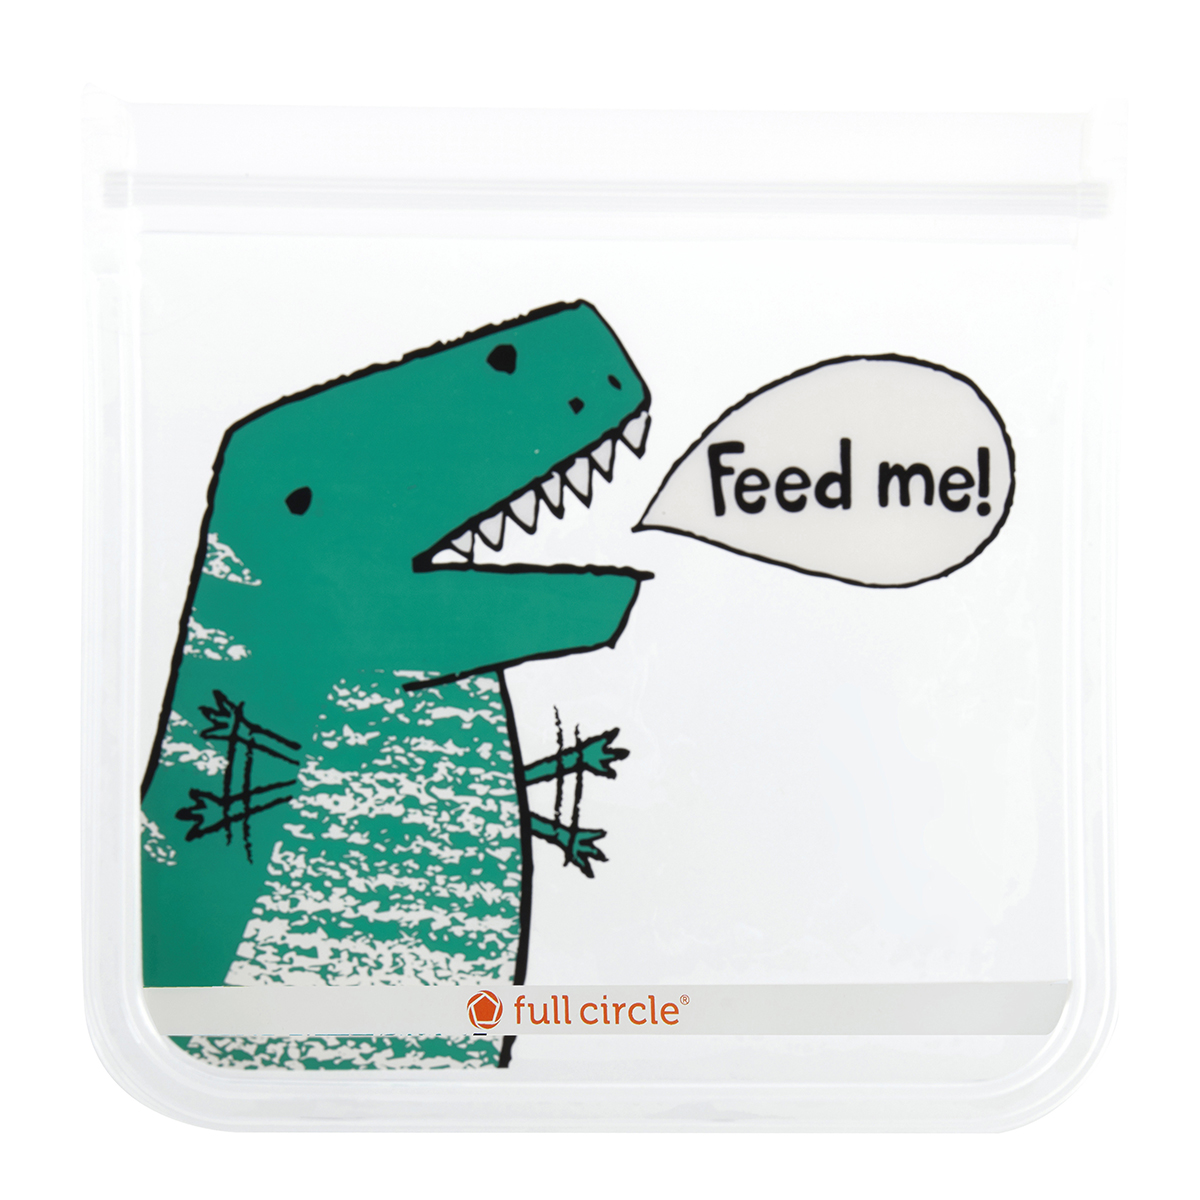 Full Circle Reusable Feed Me Sandwich Bags